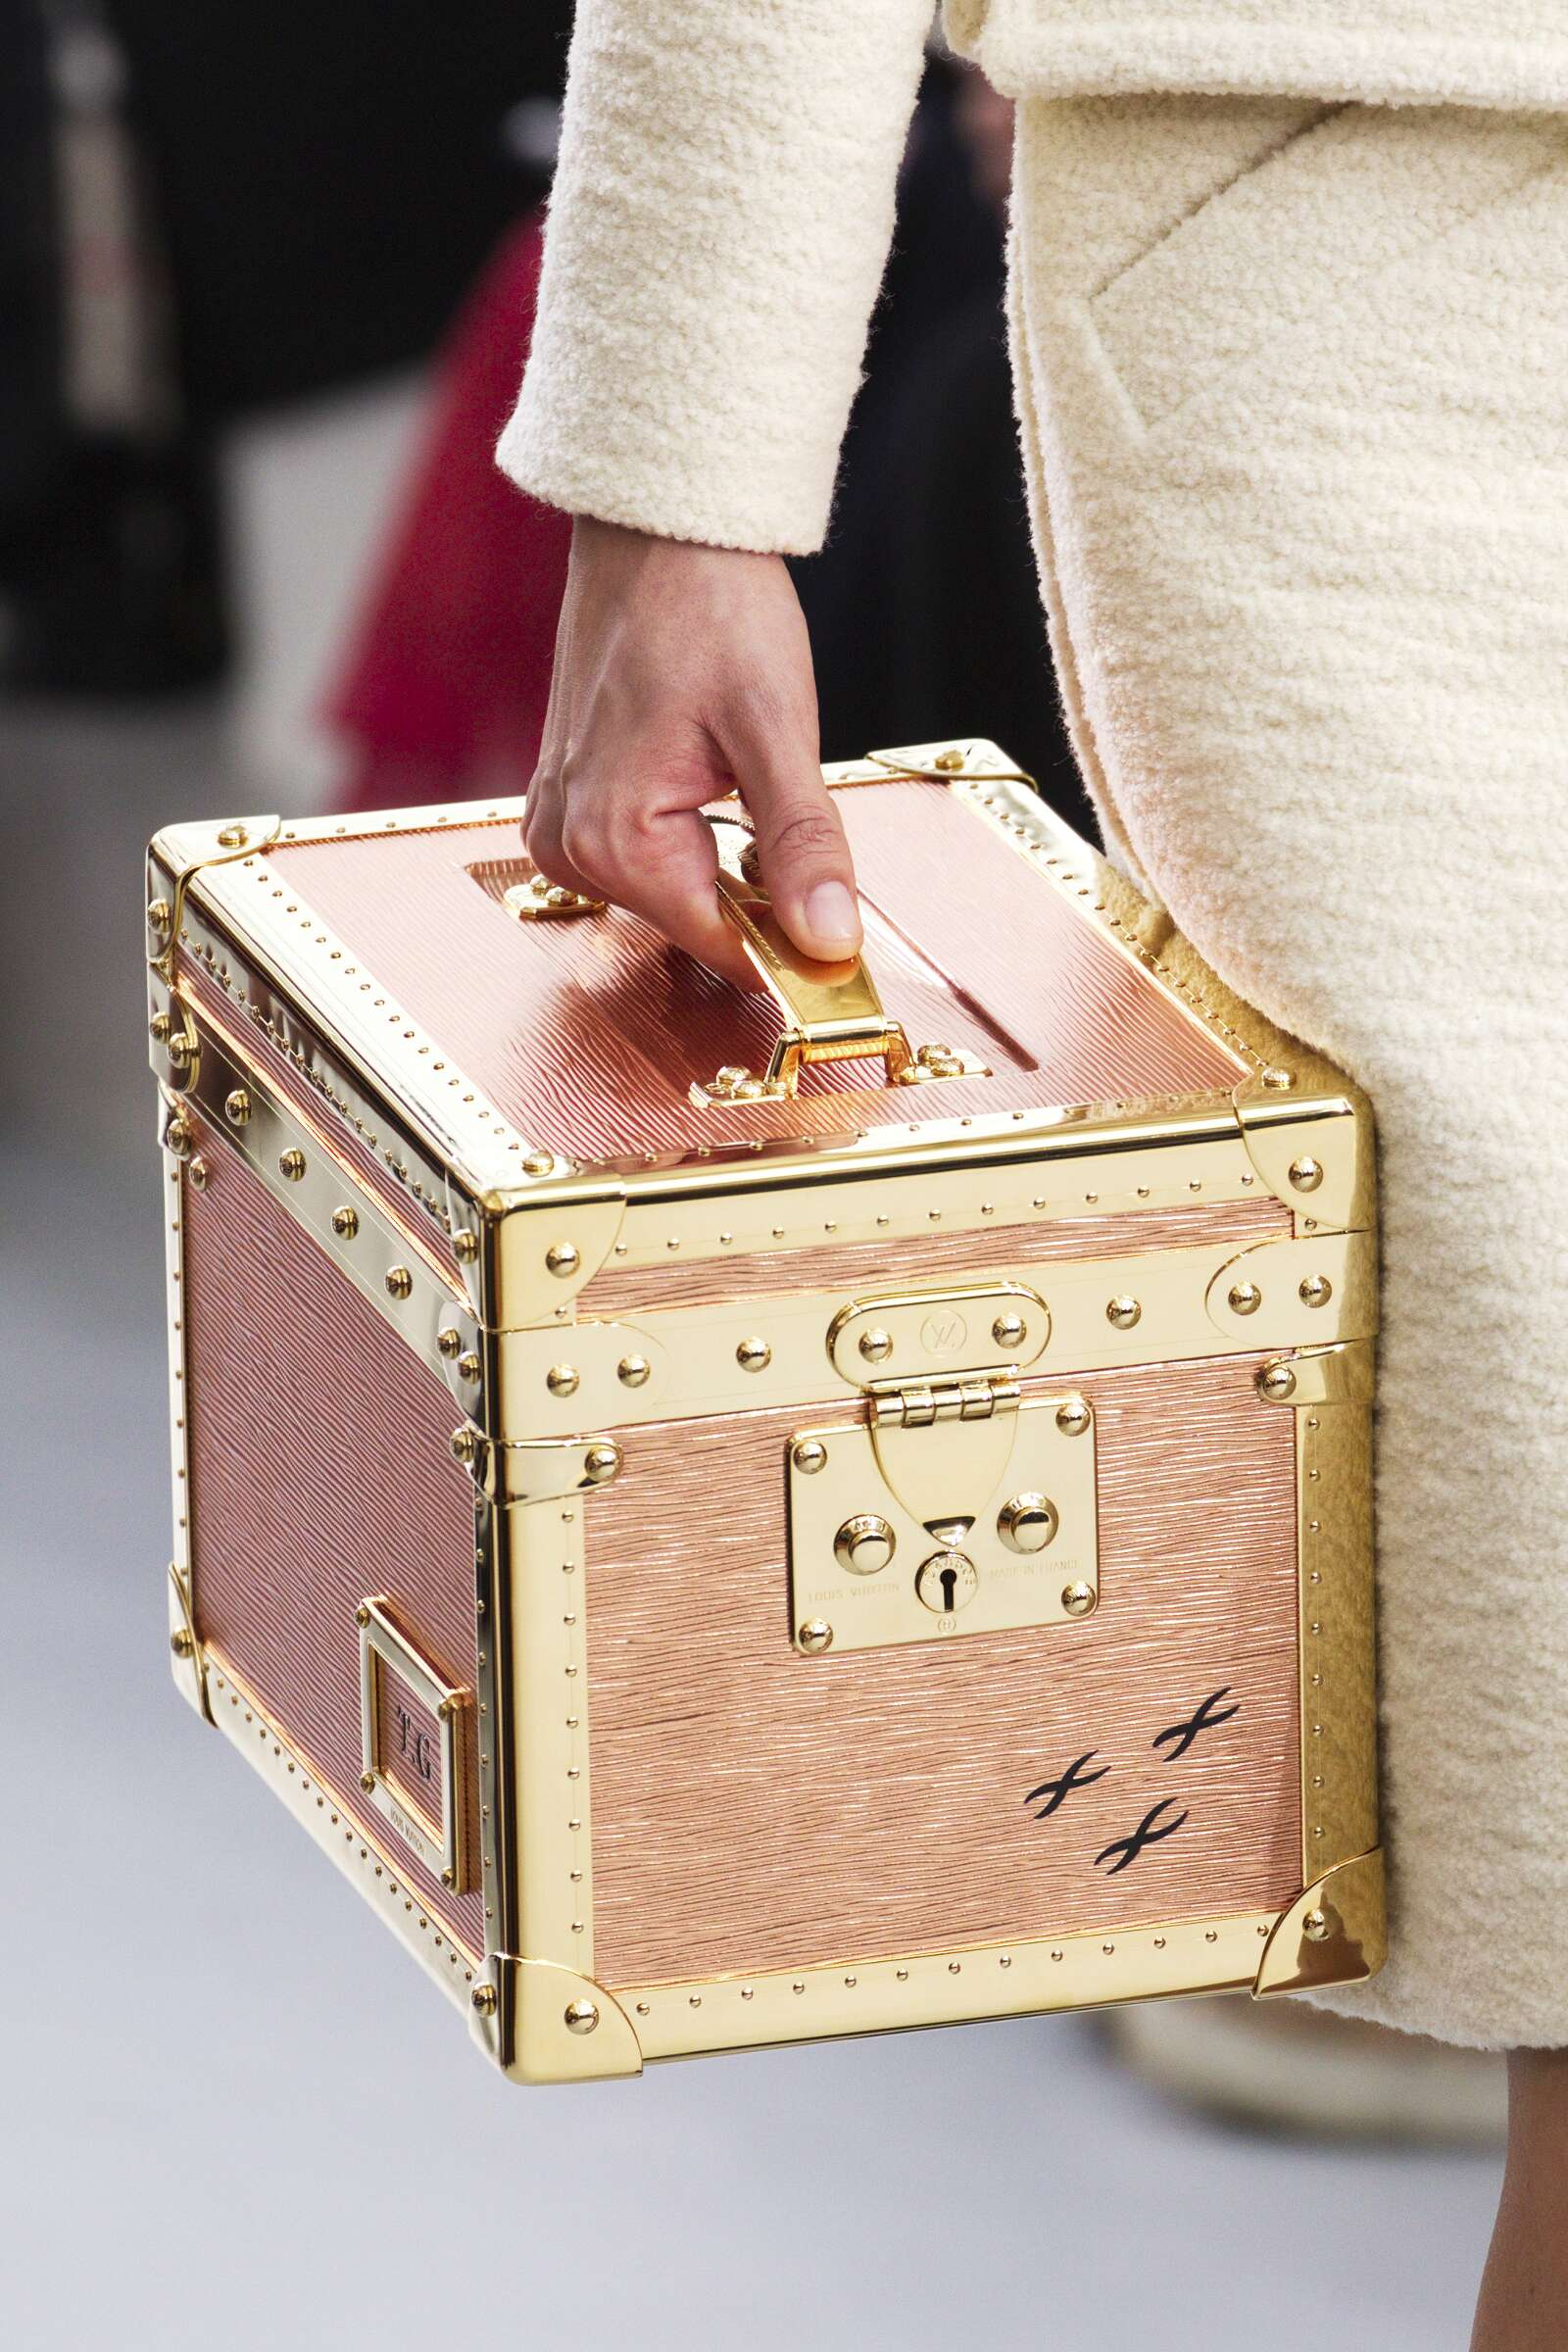 Louis Vuitton Bag Details Collection Catwalk